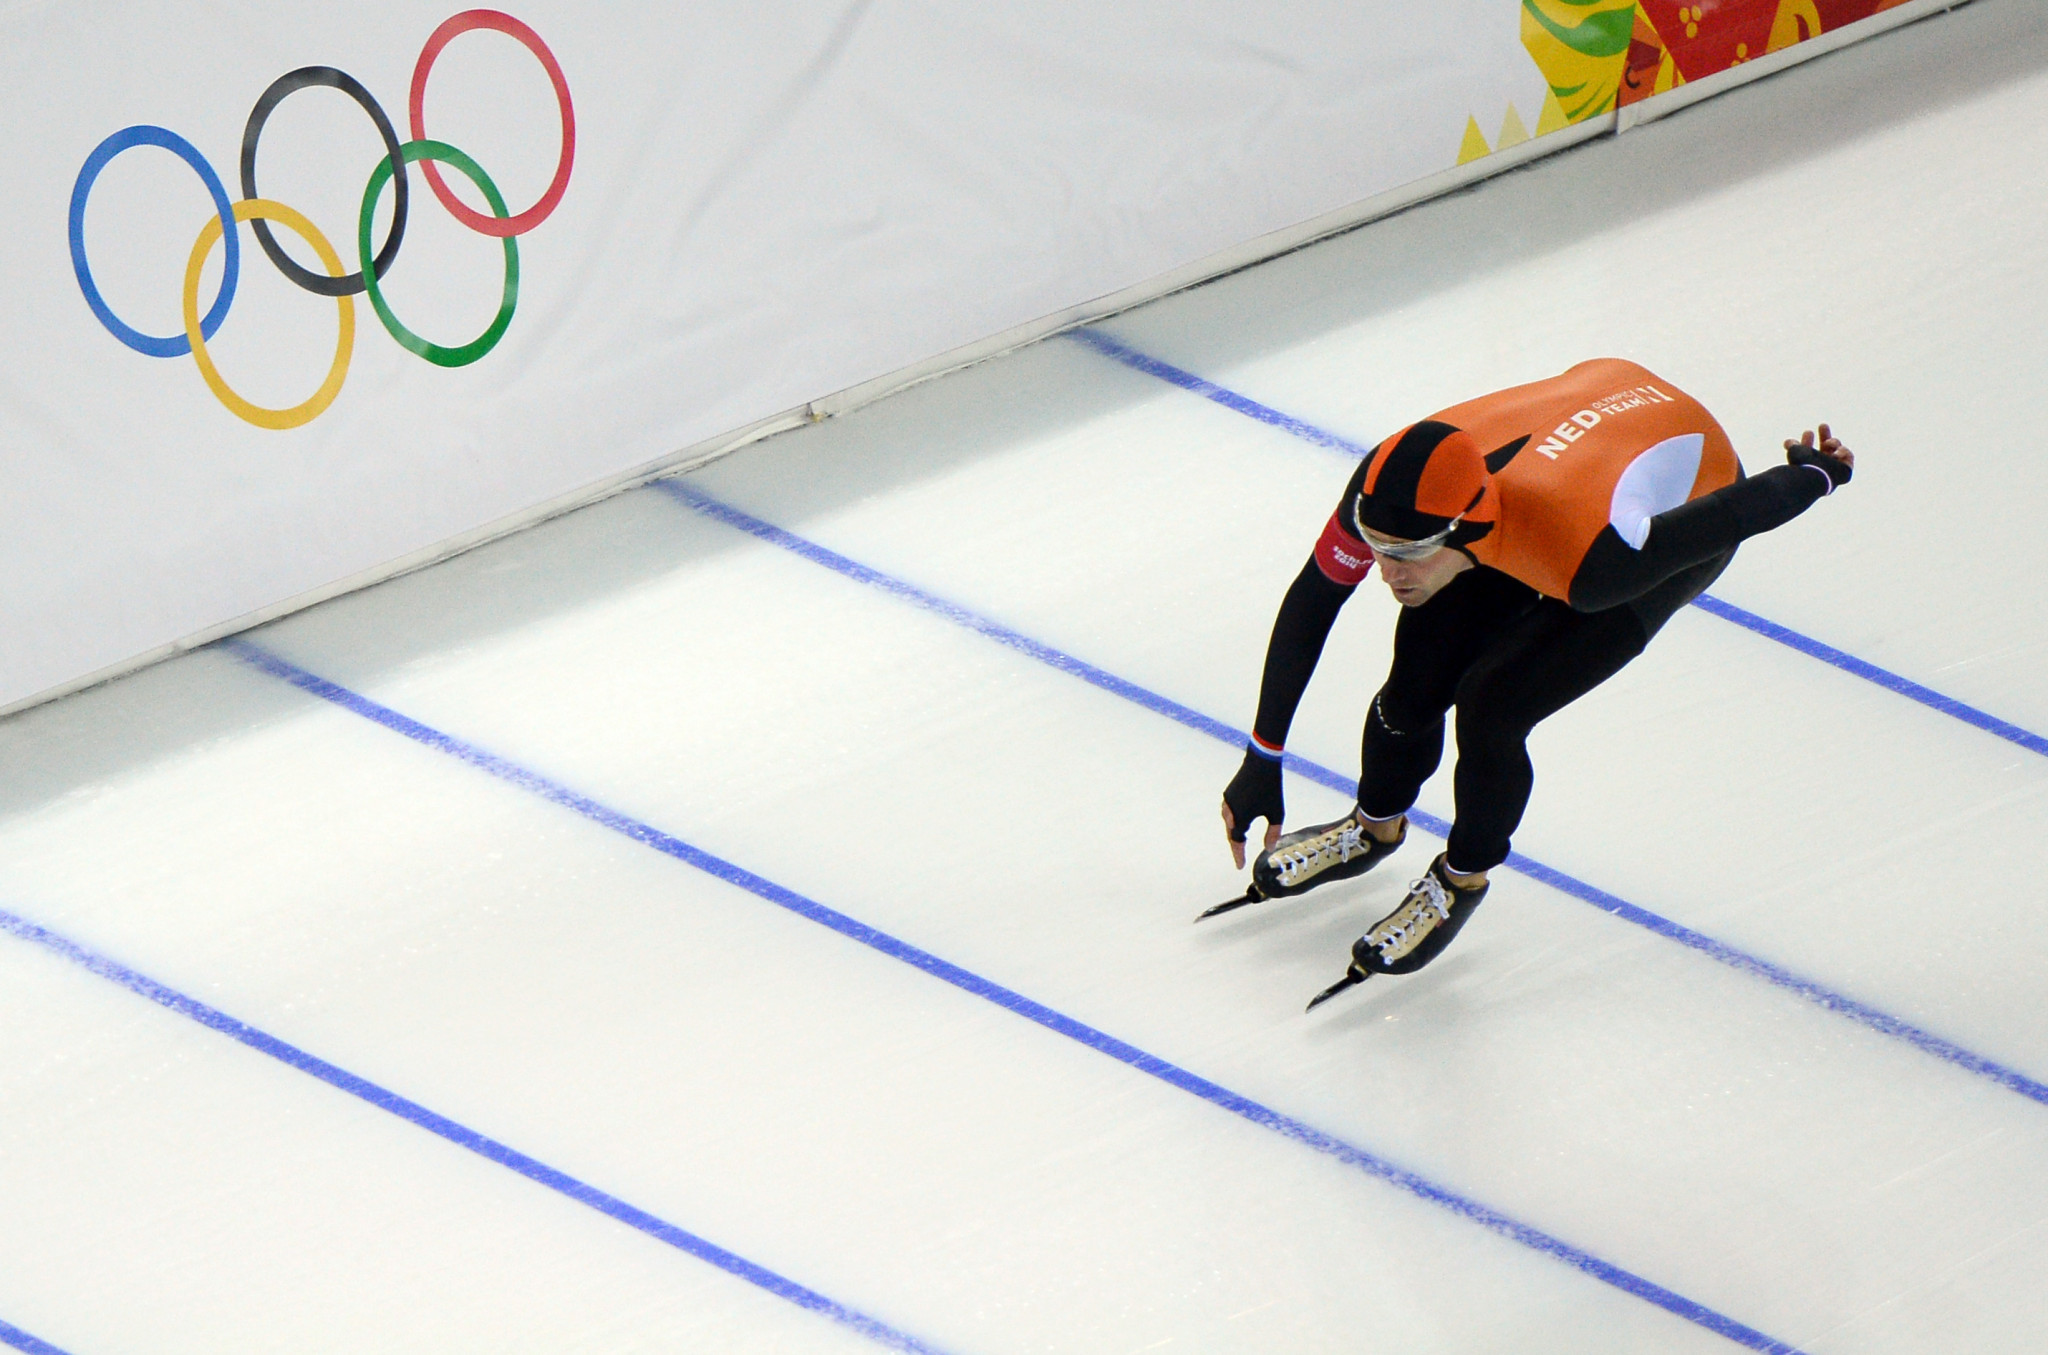 Mark Tuitert was one of two Dutch skaters to win a landmark case last year which could have major consequences for sporting bodies ©Getty Images